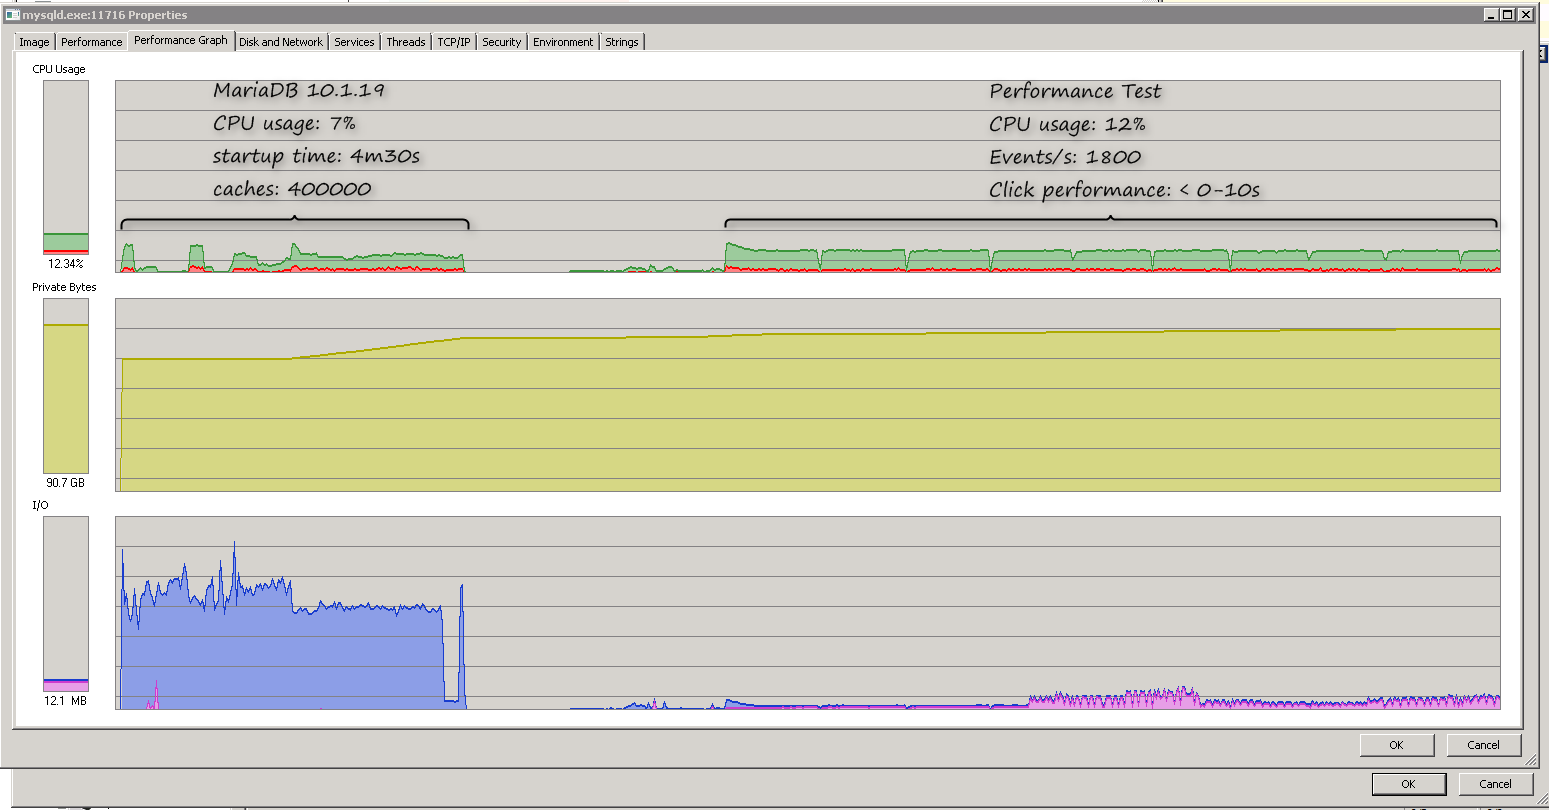 MDEV-11284] Extremely high cpu usage and slow performance after